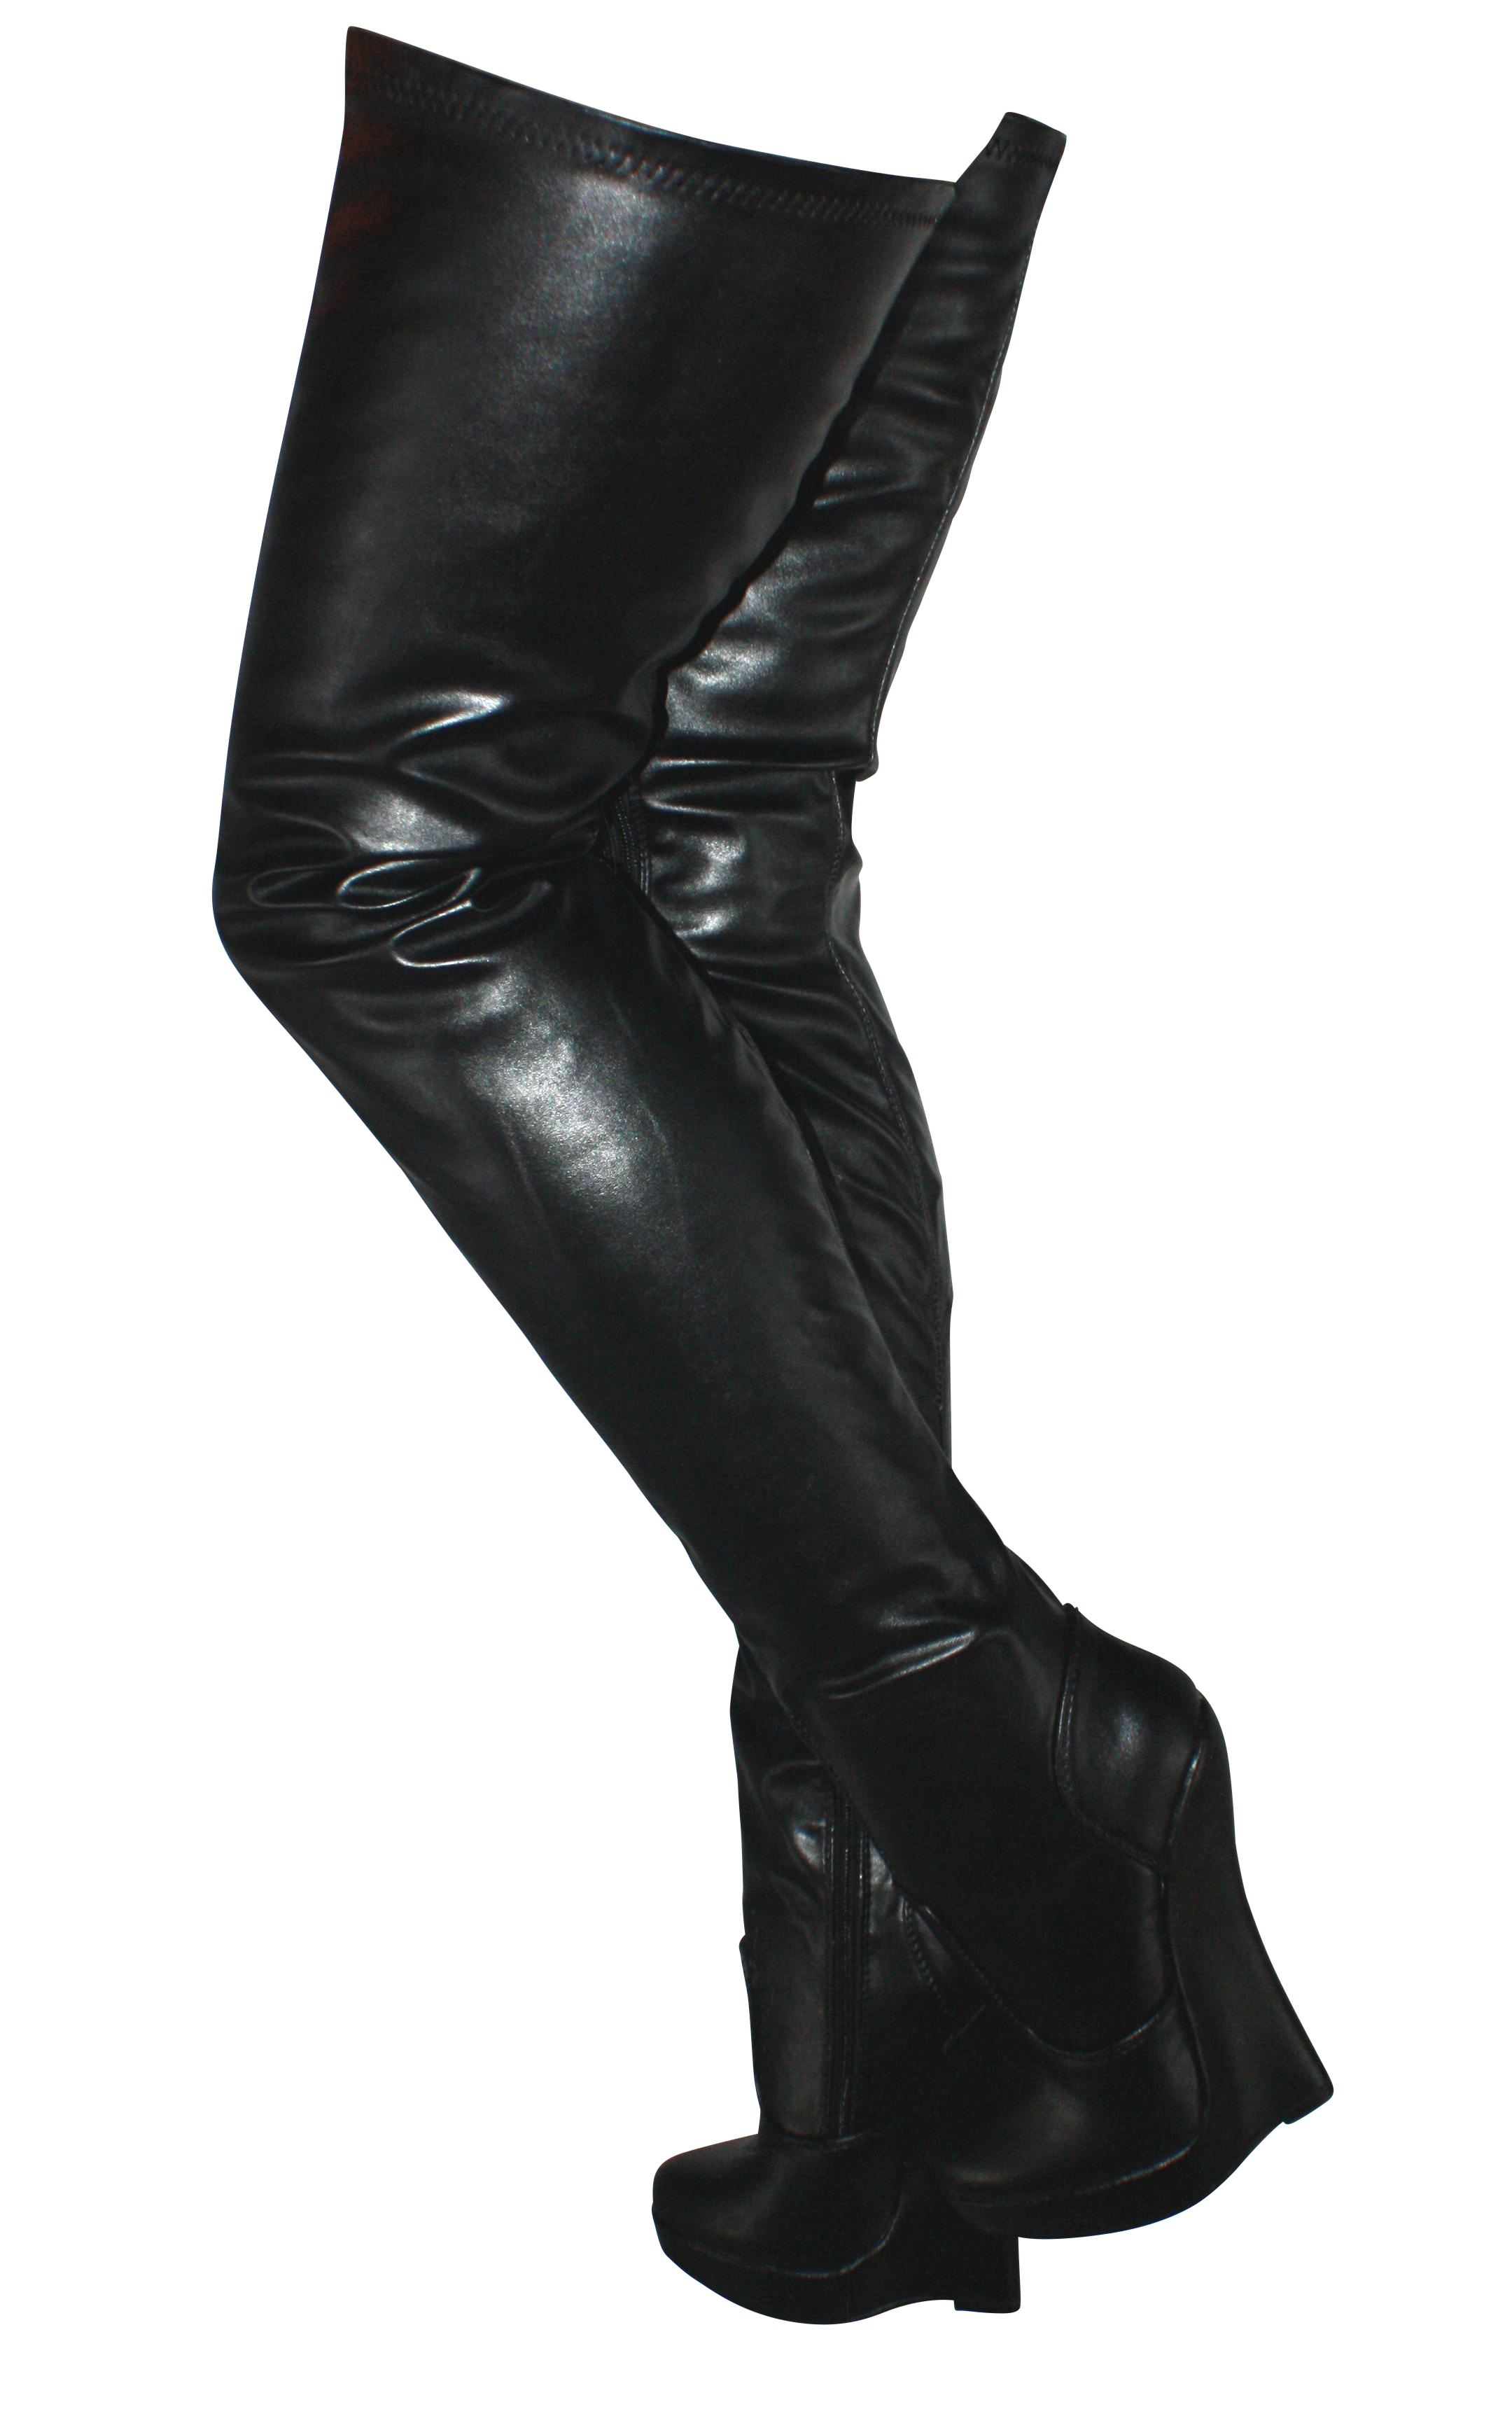 Details about Erogance Leatherette Wedge High Heels Crotch Overknees Size 37 46 New 5072 Black